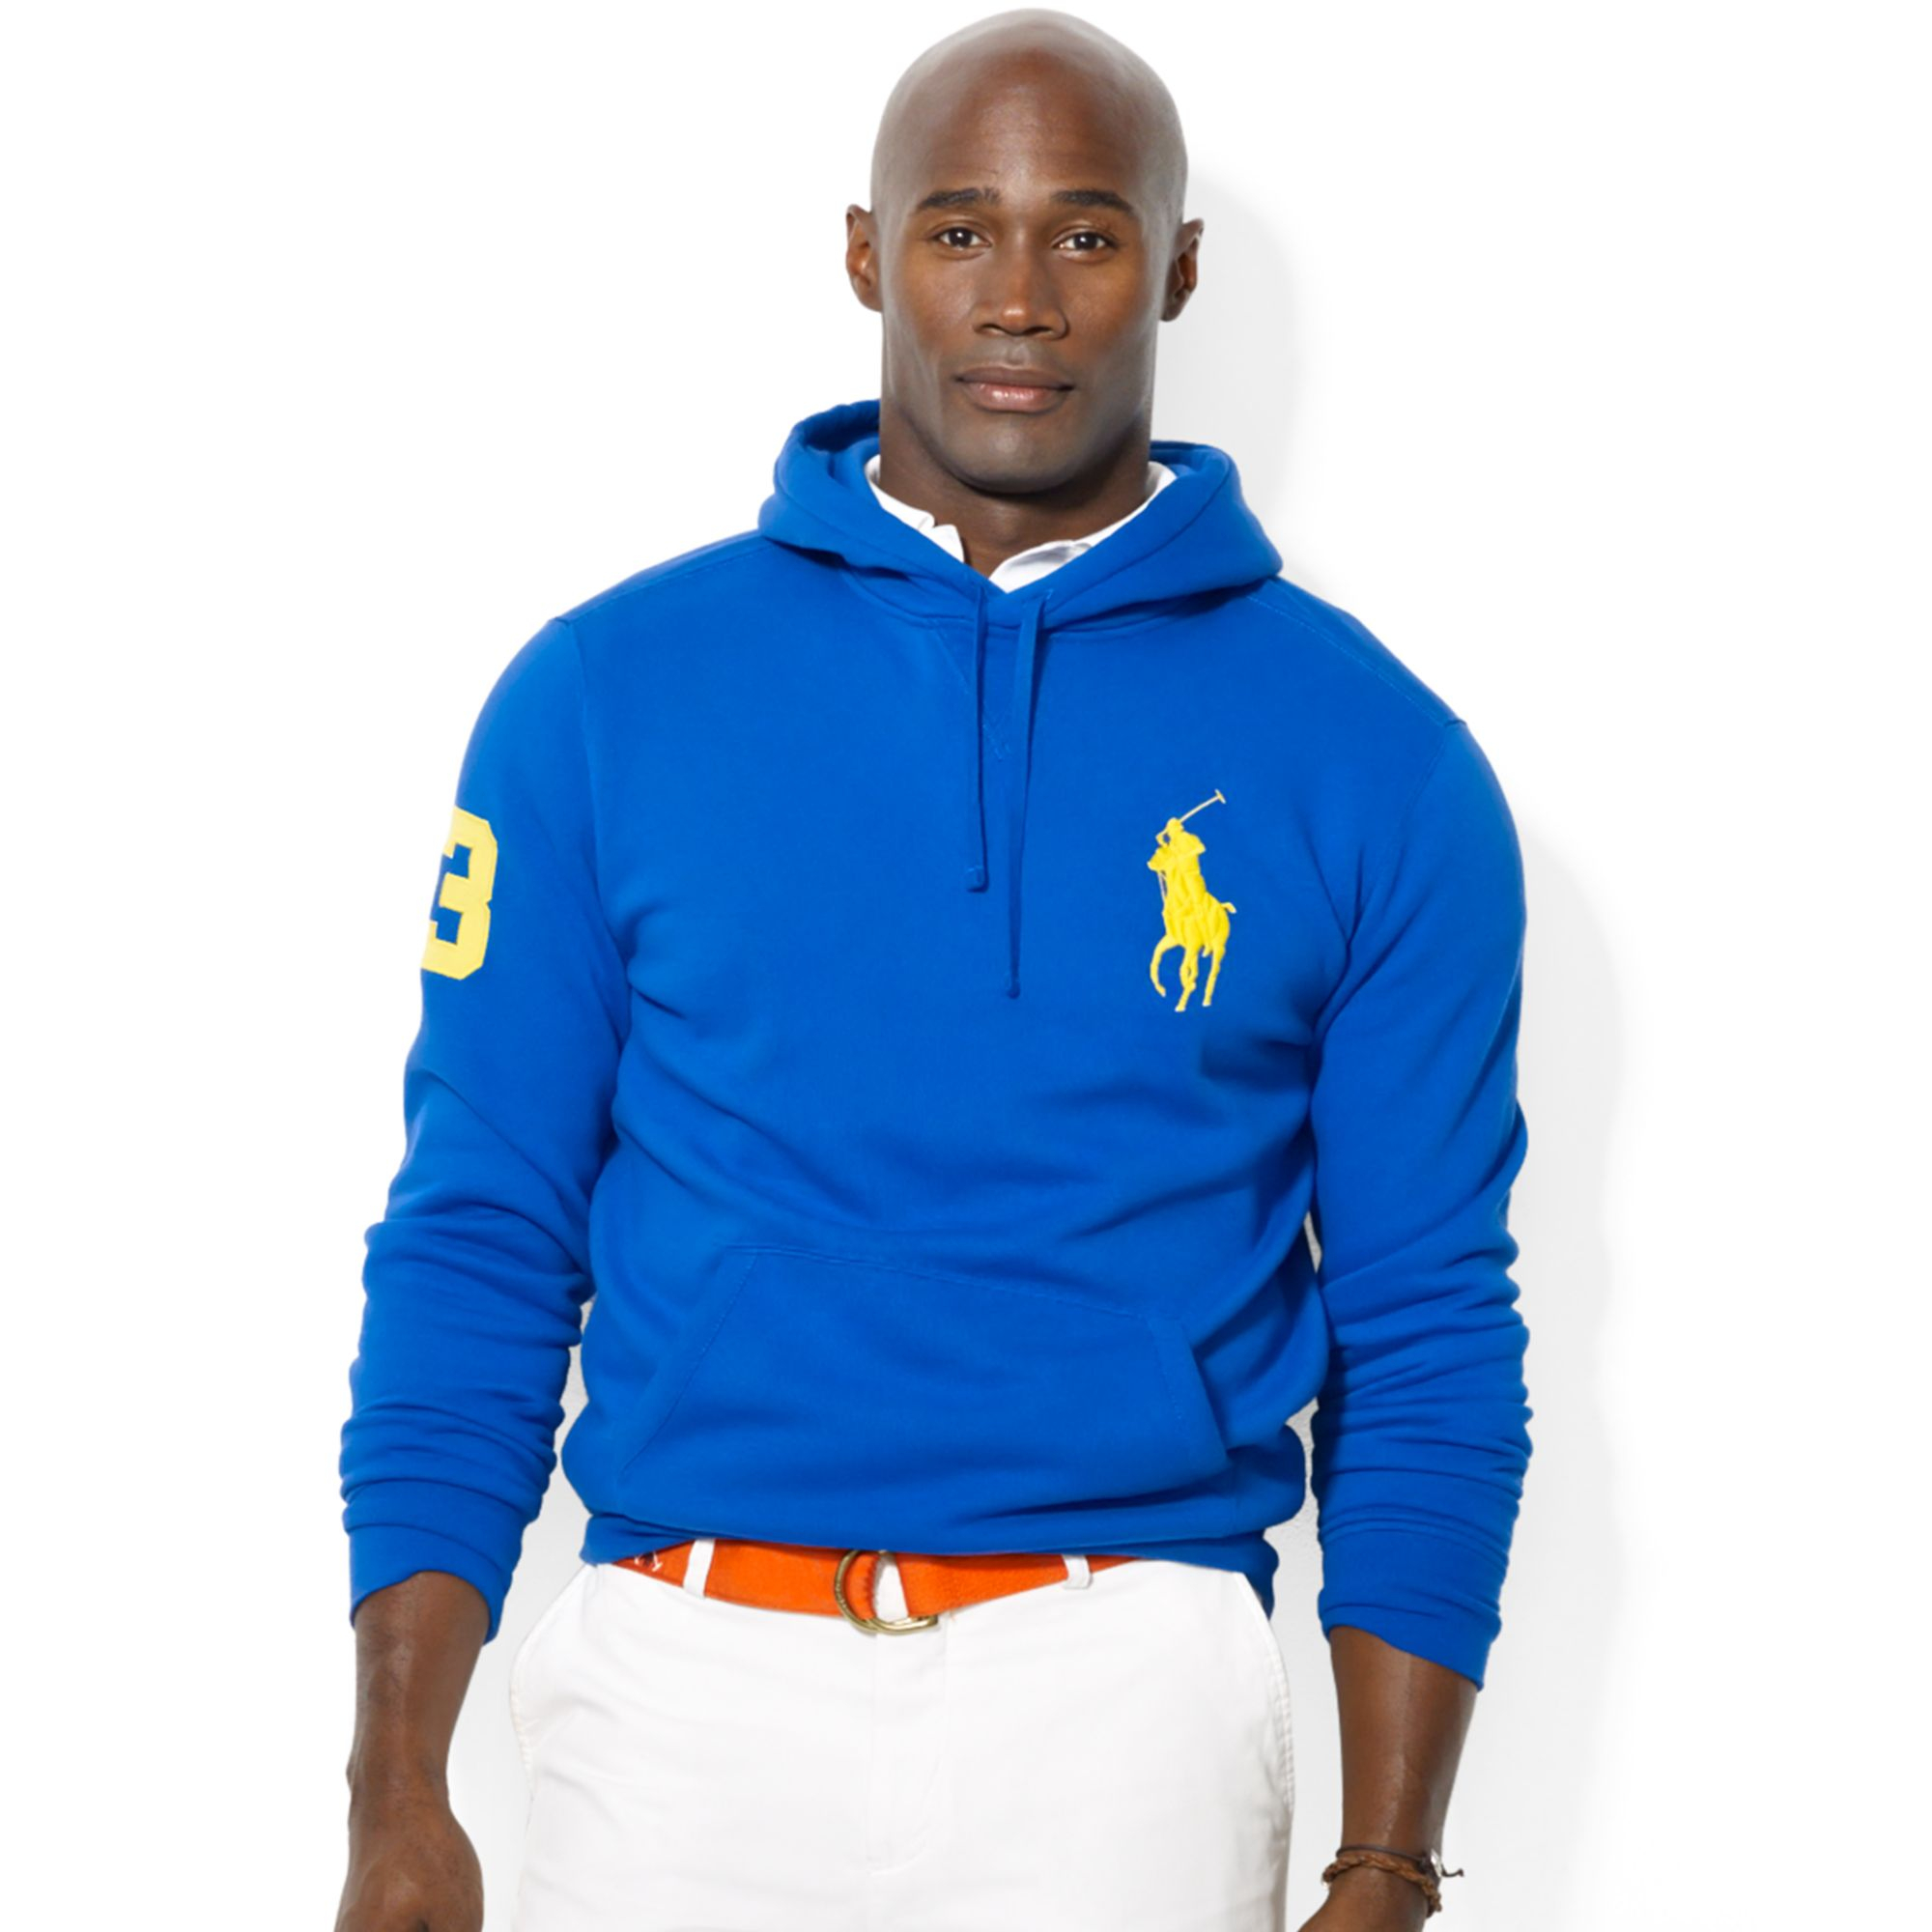 Big Tall Suits, Shirts, Pants, Coats, and more. Buy Ralph Lauren Long. Buy Ralph Lauren Long on eBay now! Men Polo. Men Polo Ralph Lauren T Shirt Long Sleeve S M L Xl Xxl - Standard Fit - Nwt. $ New Polo. New Polo Ralph Lauren Men Oxford .